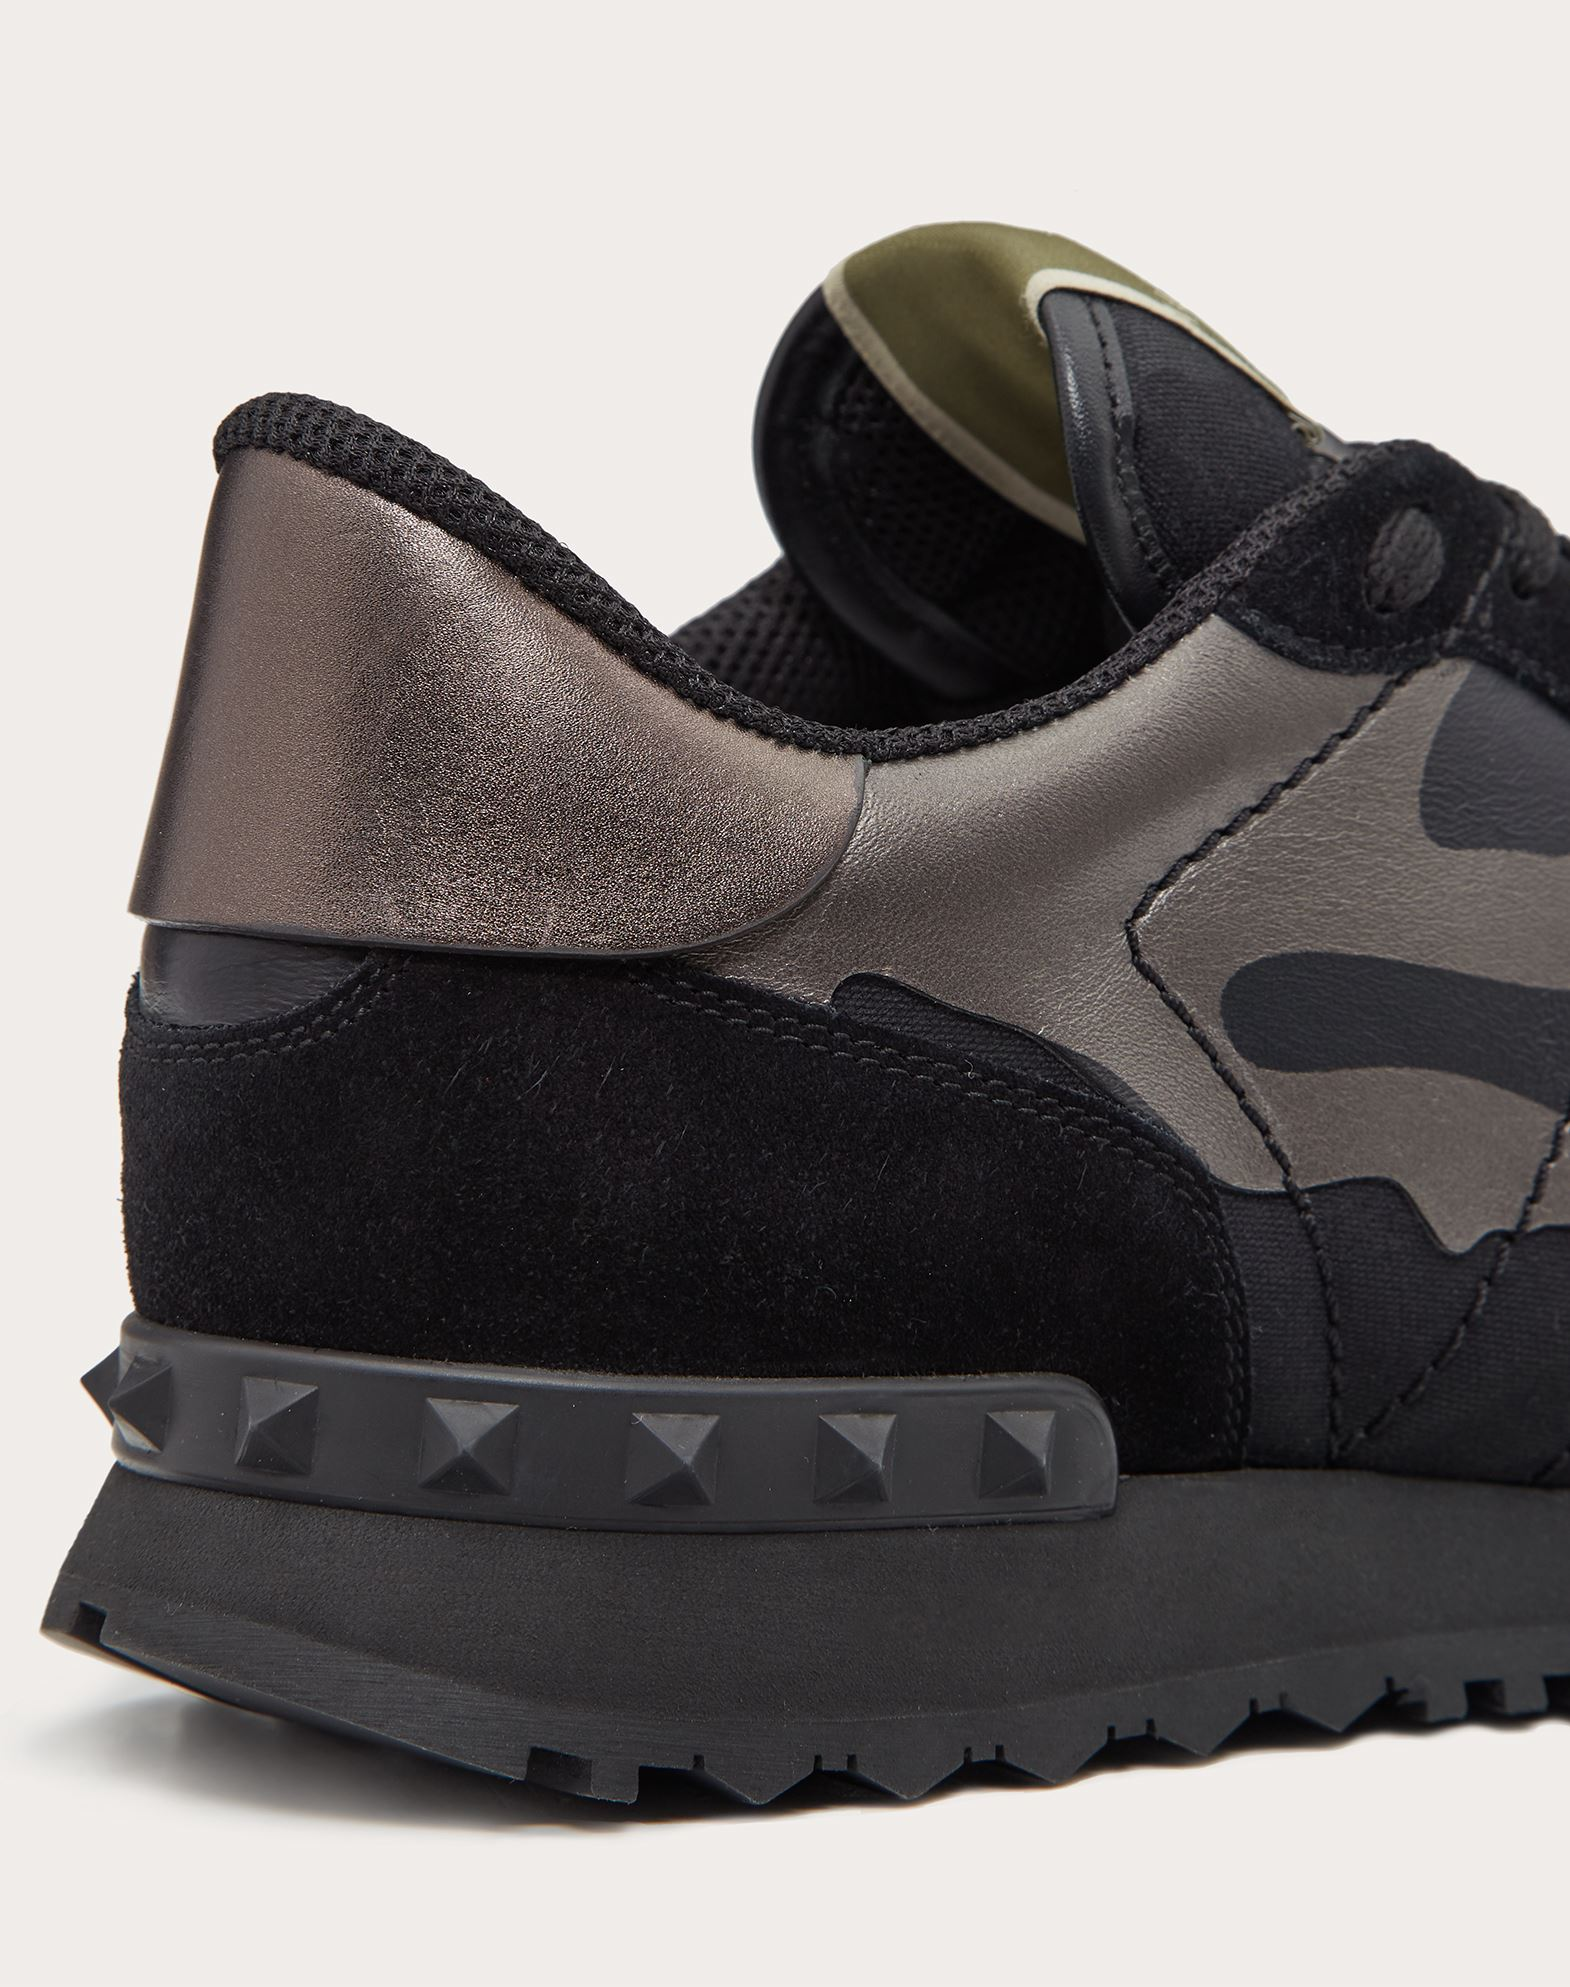 VALENTINO GARAVANI UOMO Camouflage Noir Rockrunner 运动鞋 LOW-TOP SNEAKERS U a